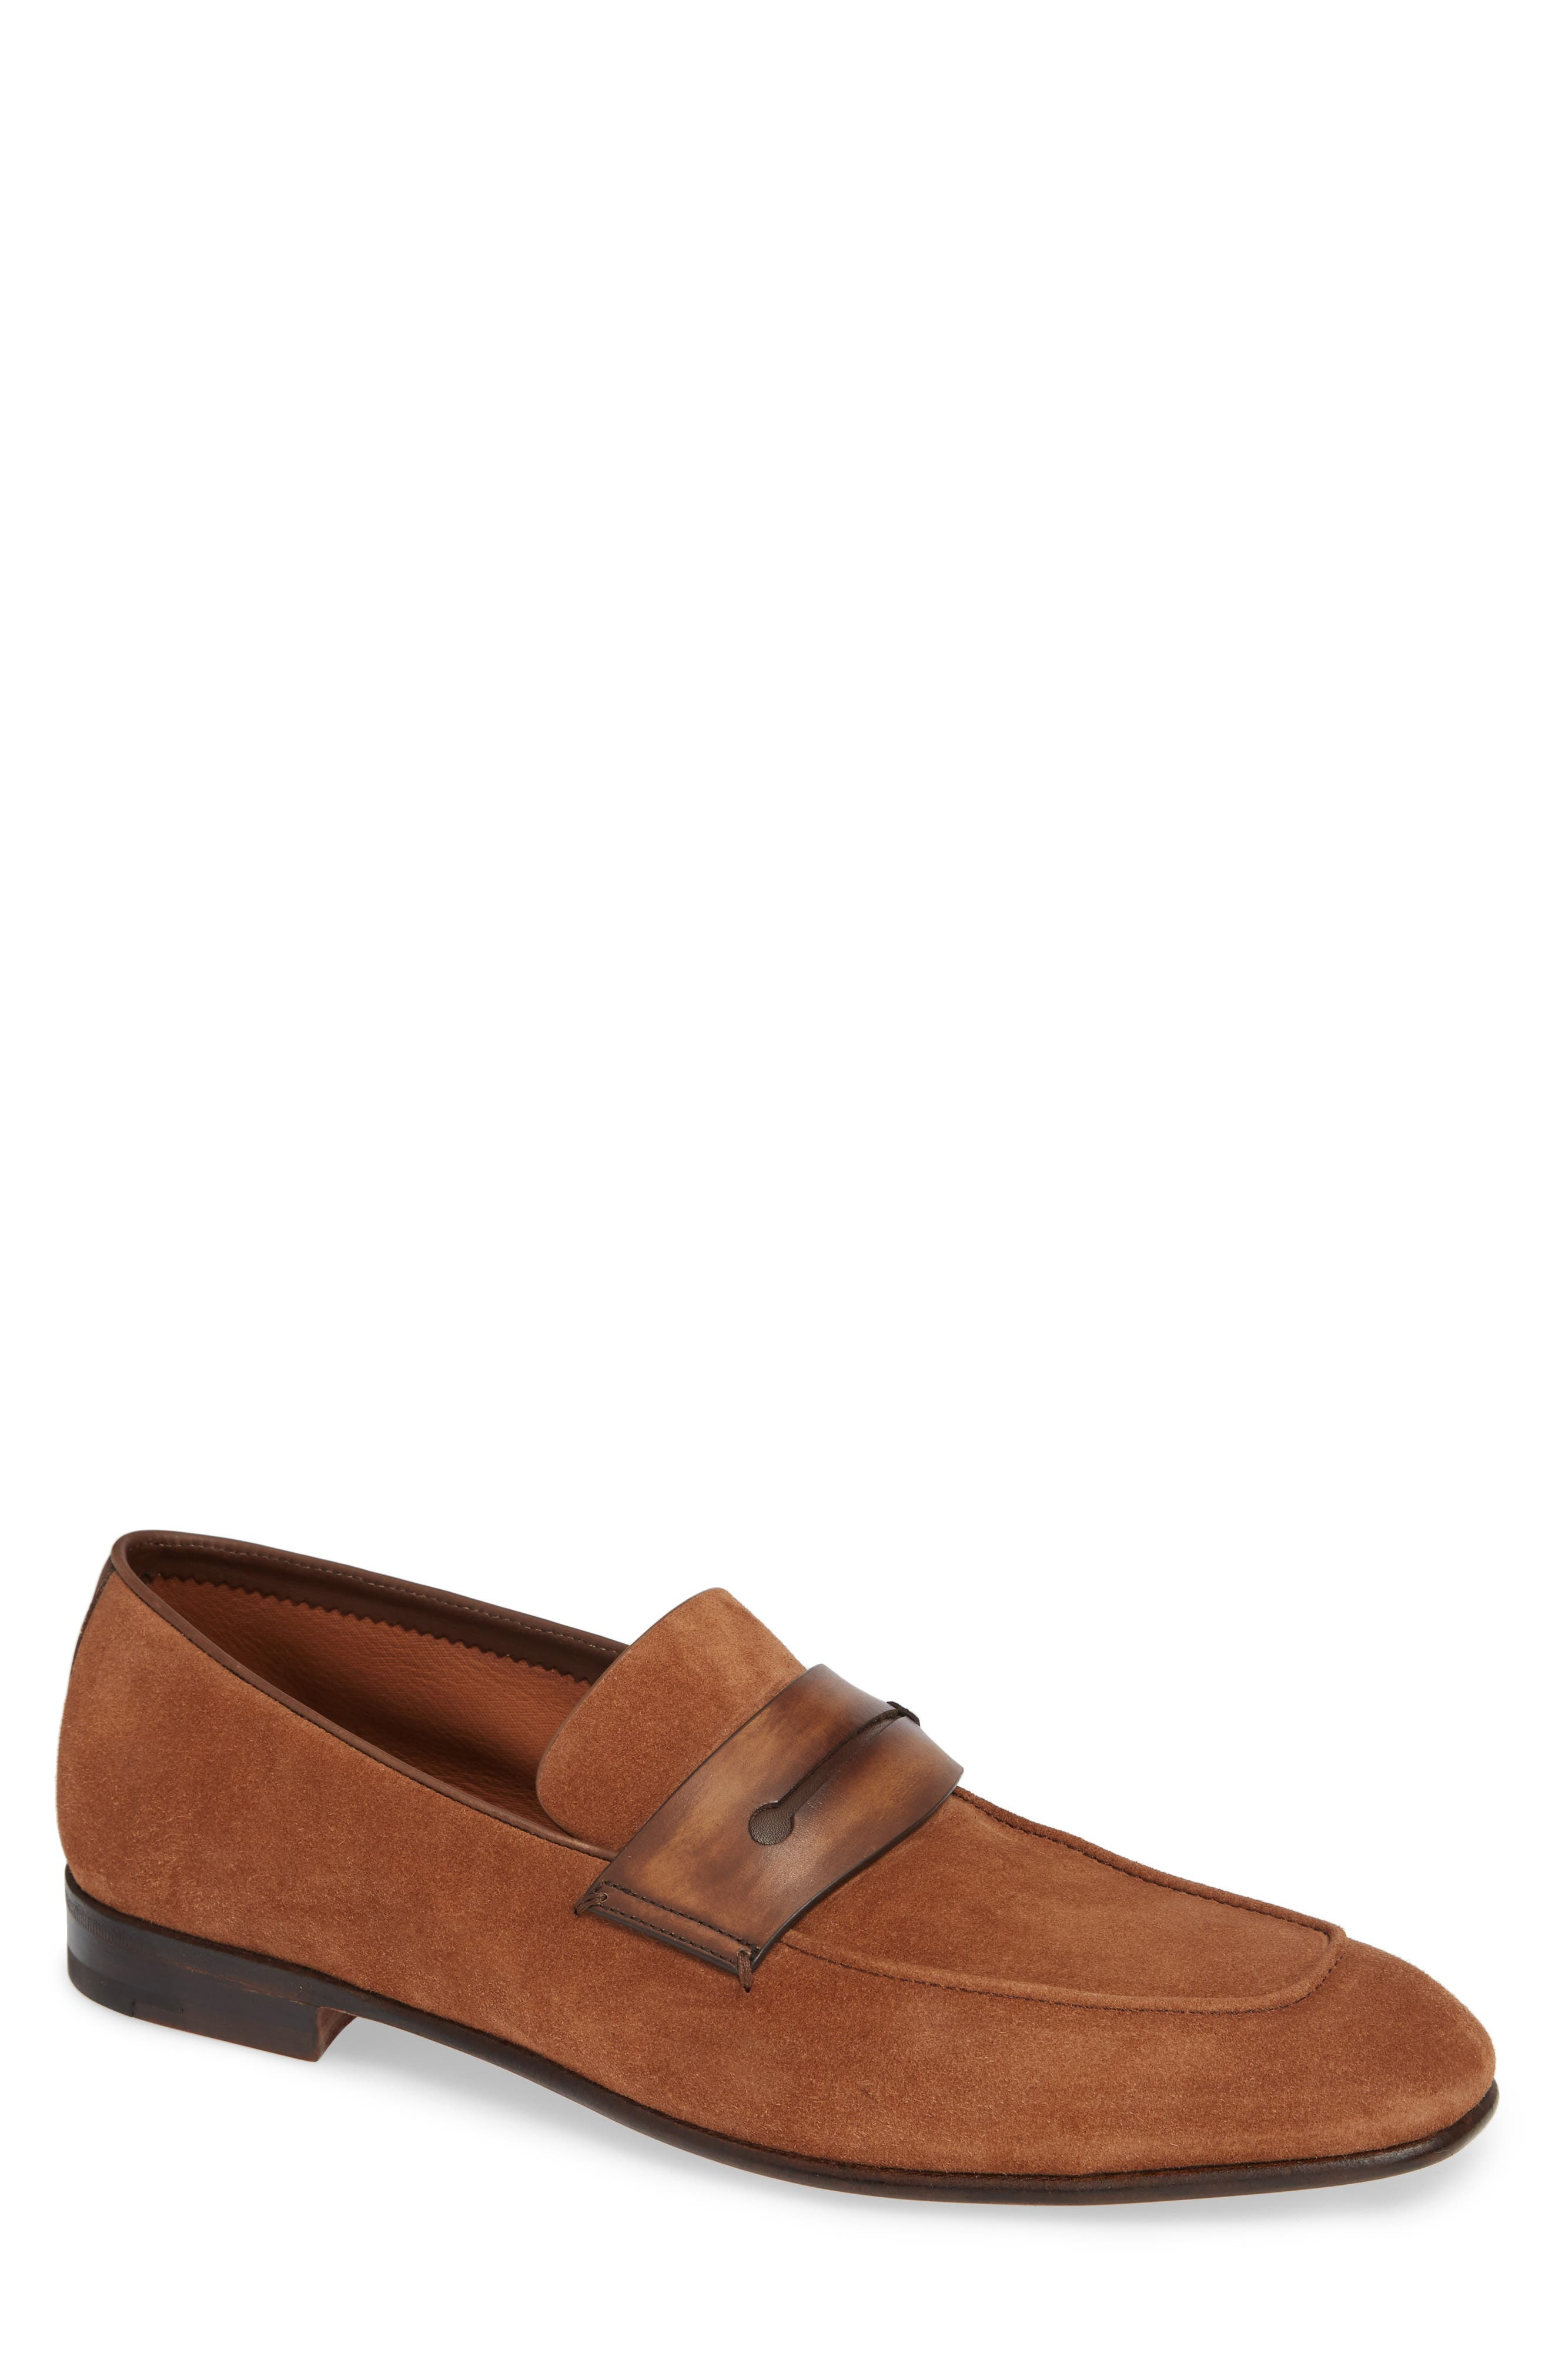 La Sola Suede Penny Loafer in Brown/Brown